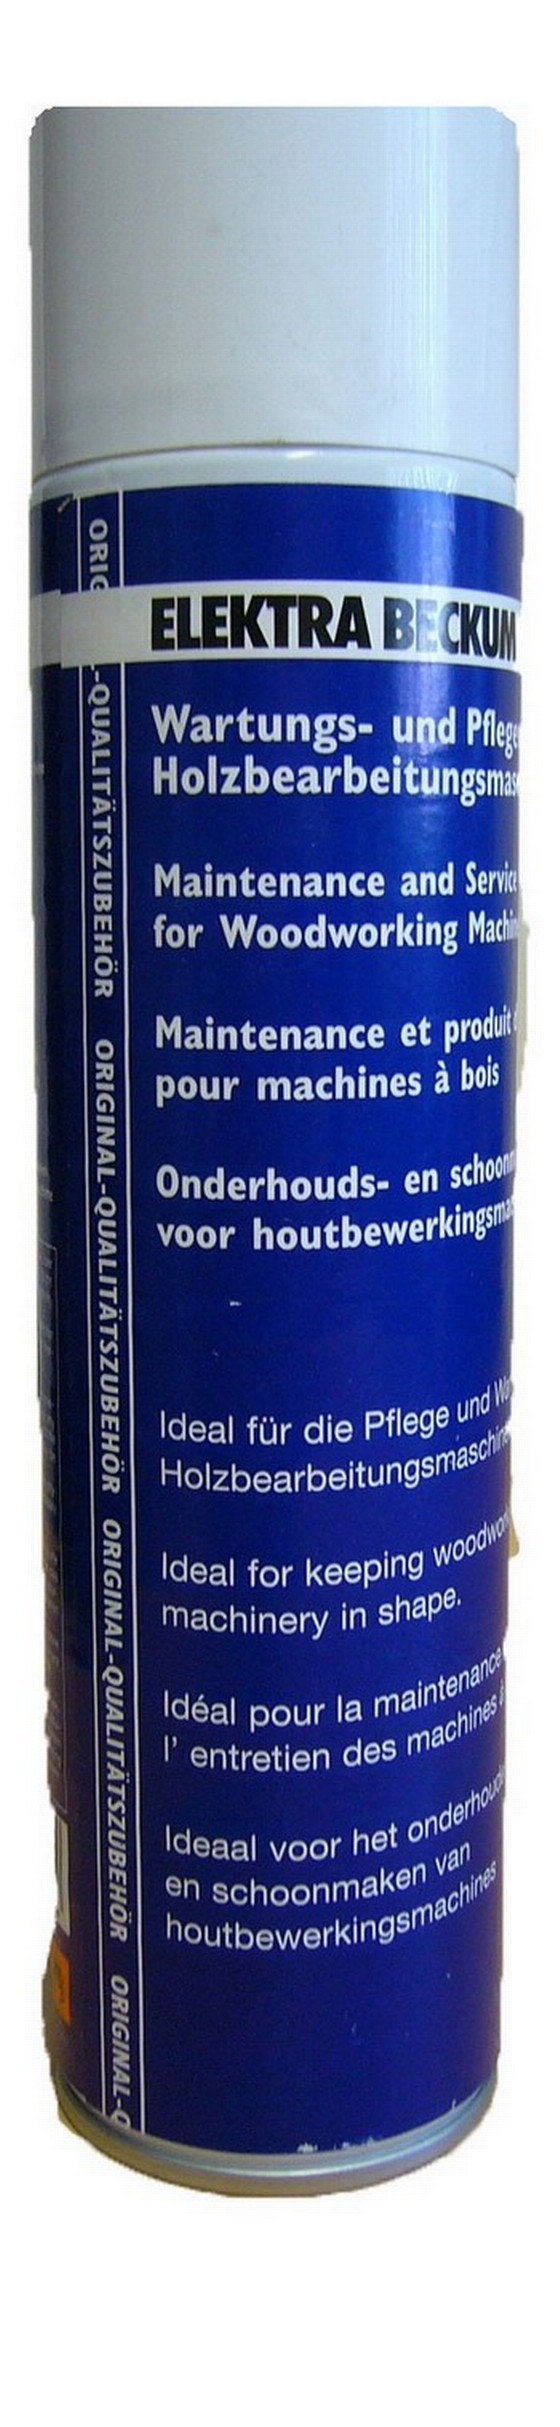 METABO CARE AND MAINTENCE SPRAY 400ml 0911018691